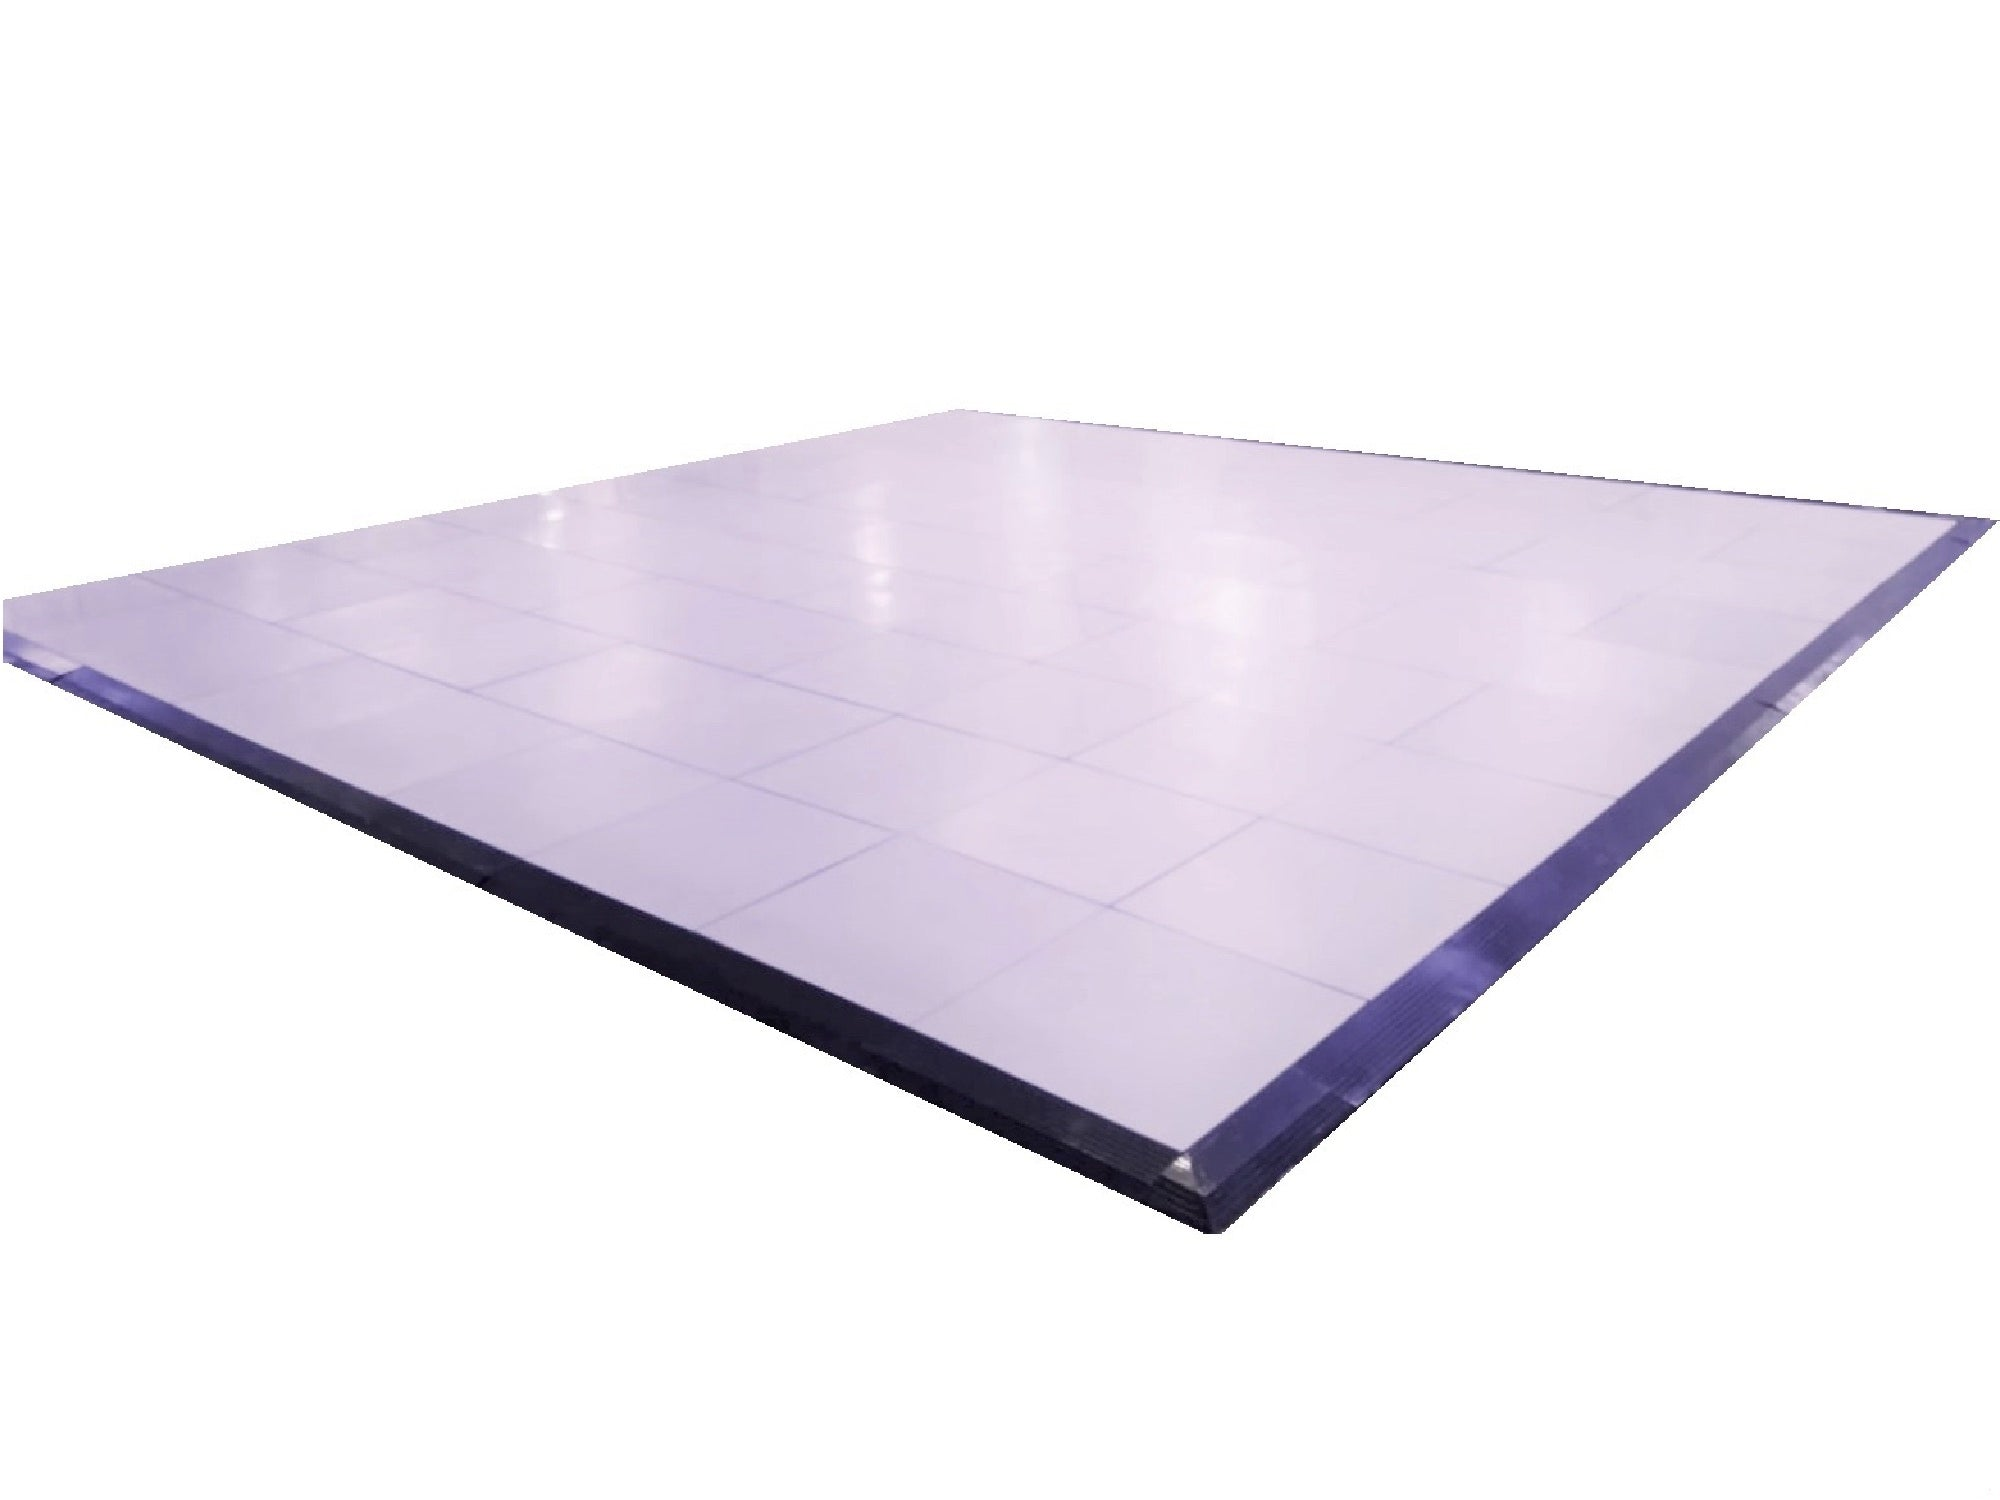 ACRYLIC DANCE FLOOR - WHITE